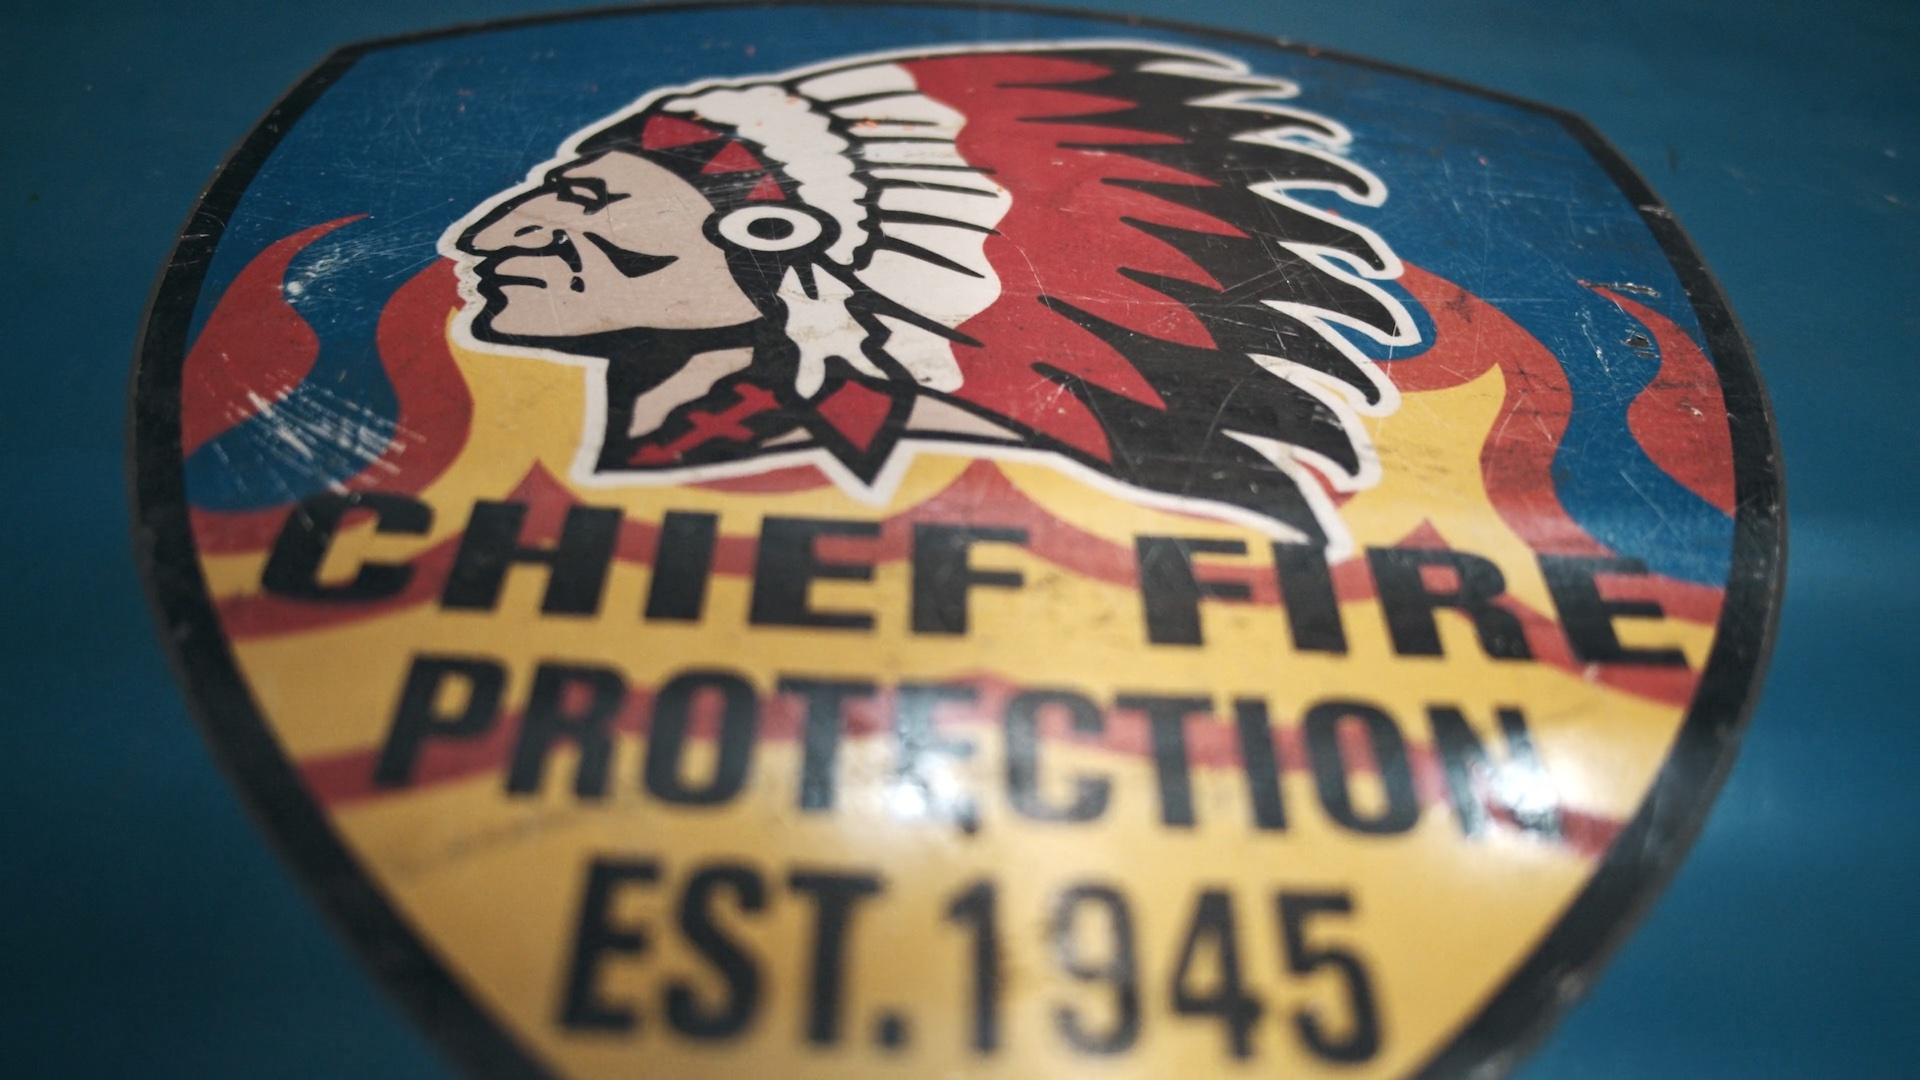 Chief Fire Protection logo